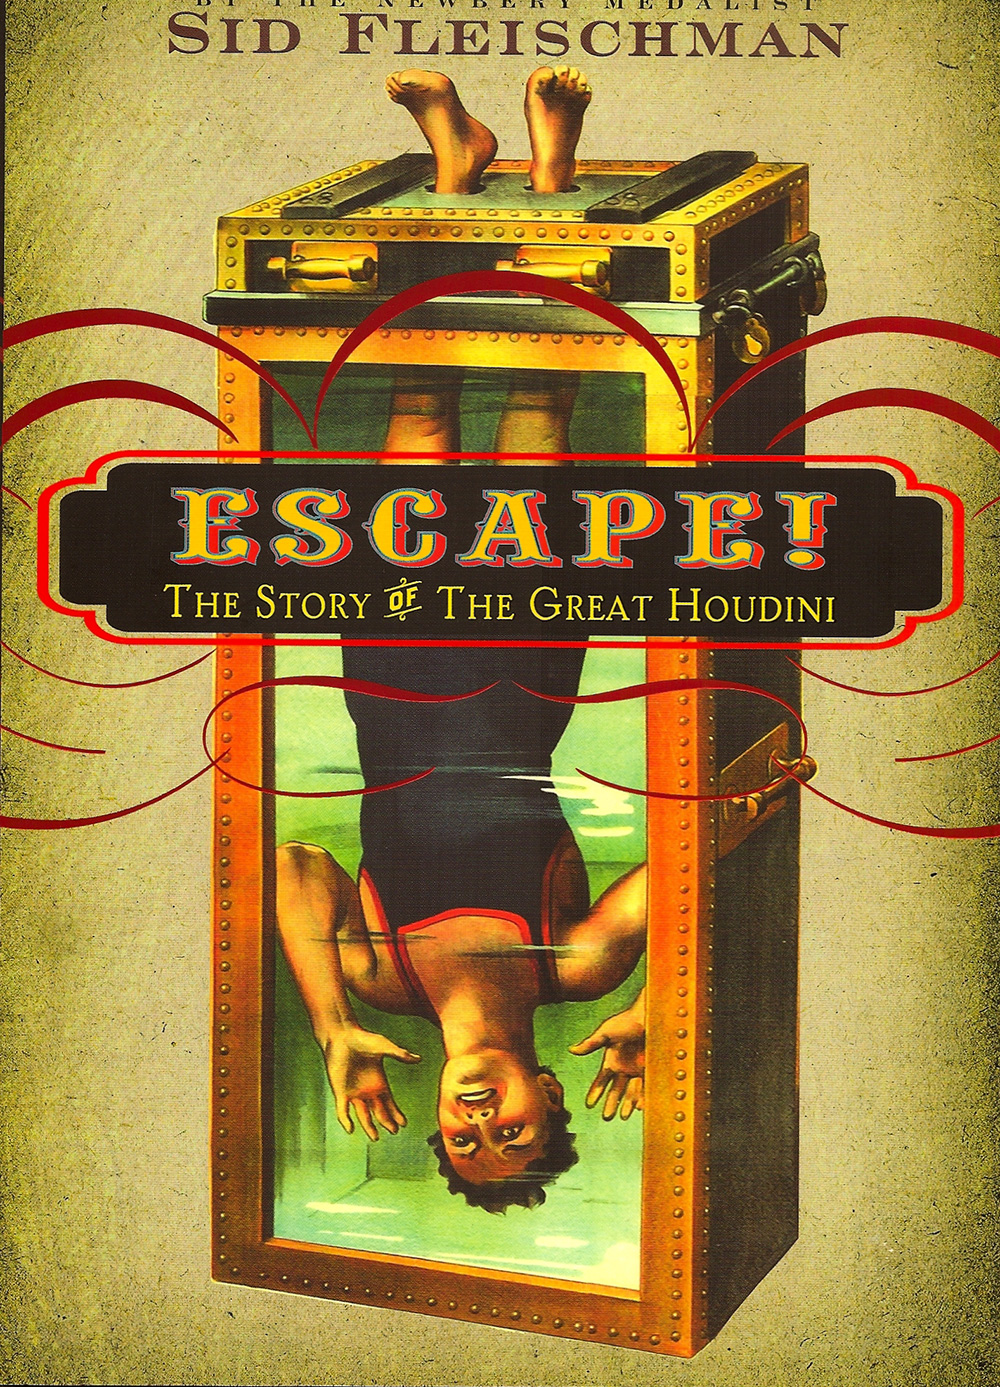 Escape! The Story of the Great Houdini - The life of the death-defying performer by a fellow magician and friend of Houdini's widowFOUR starred reviews. *